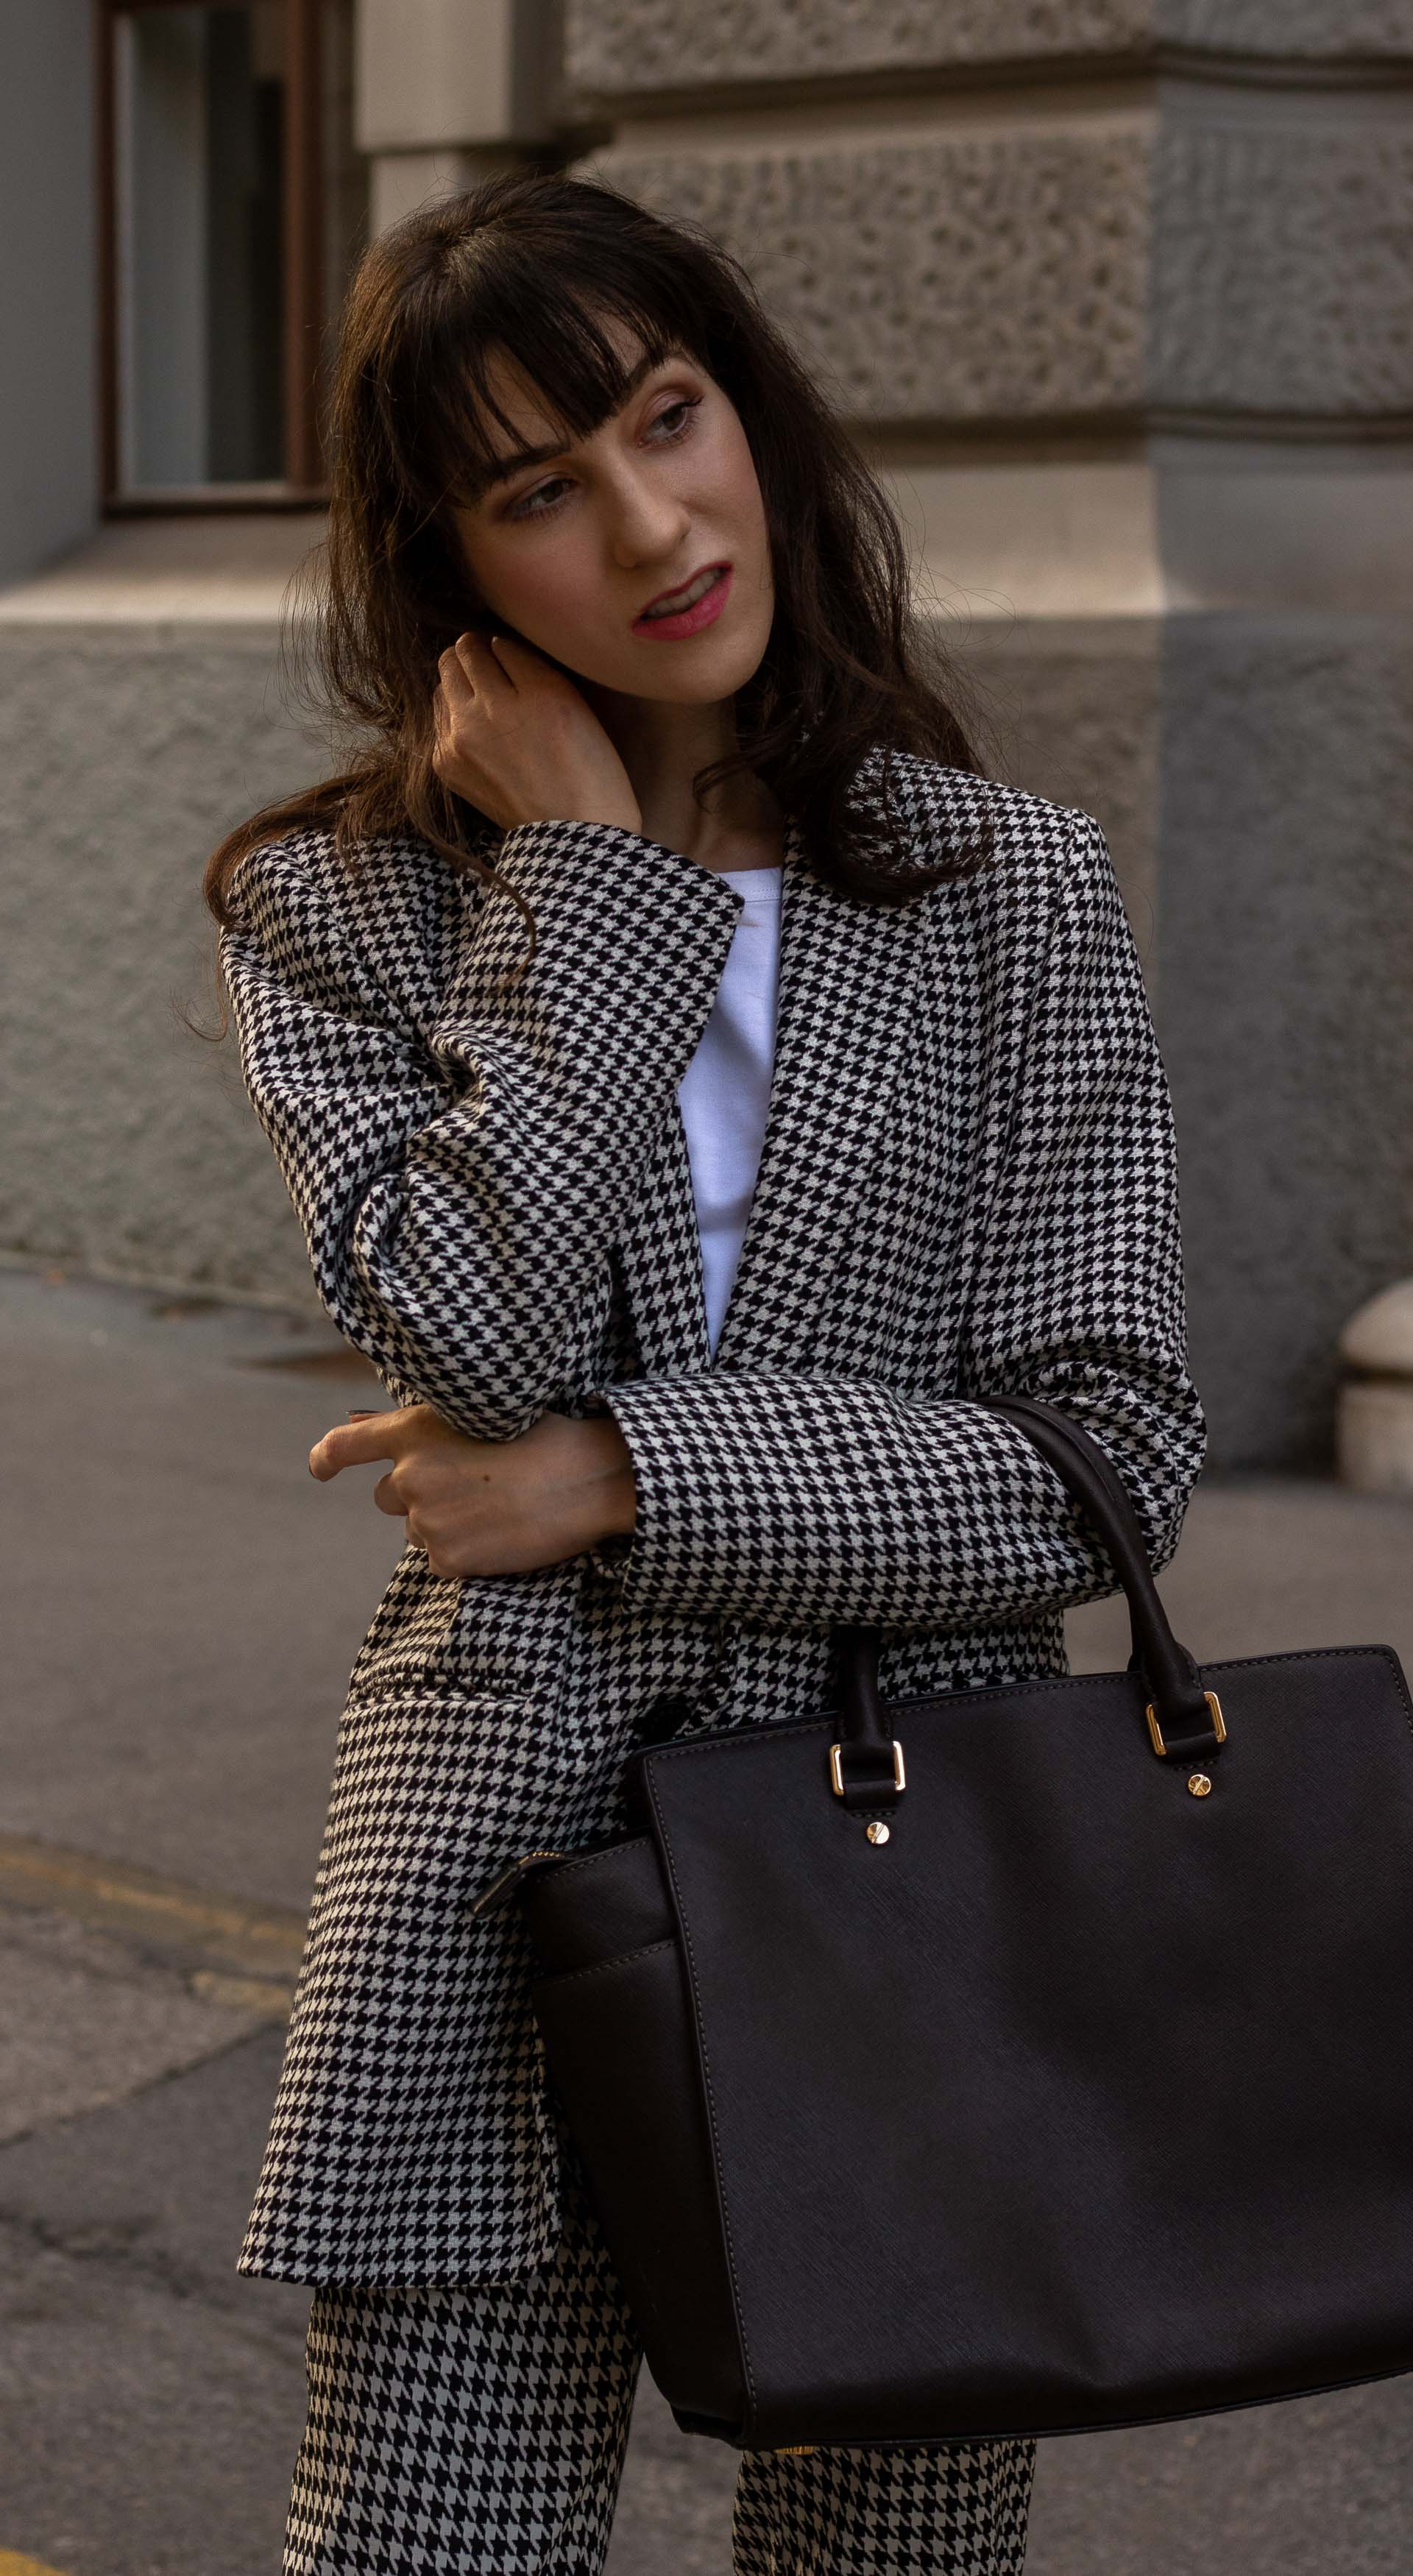 Fashion blogger Veronika Lipar of Brunette from Wall Street dressed in white Sandro houndstooth tailored blazer European Culture houndstooth pants Michael Kors Selma bag